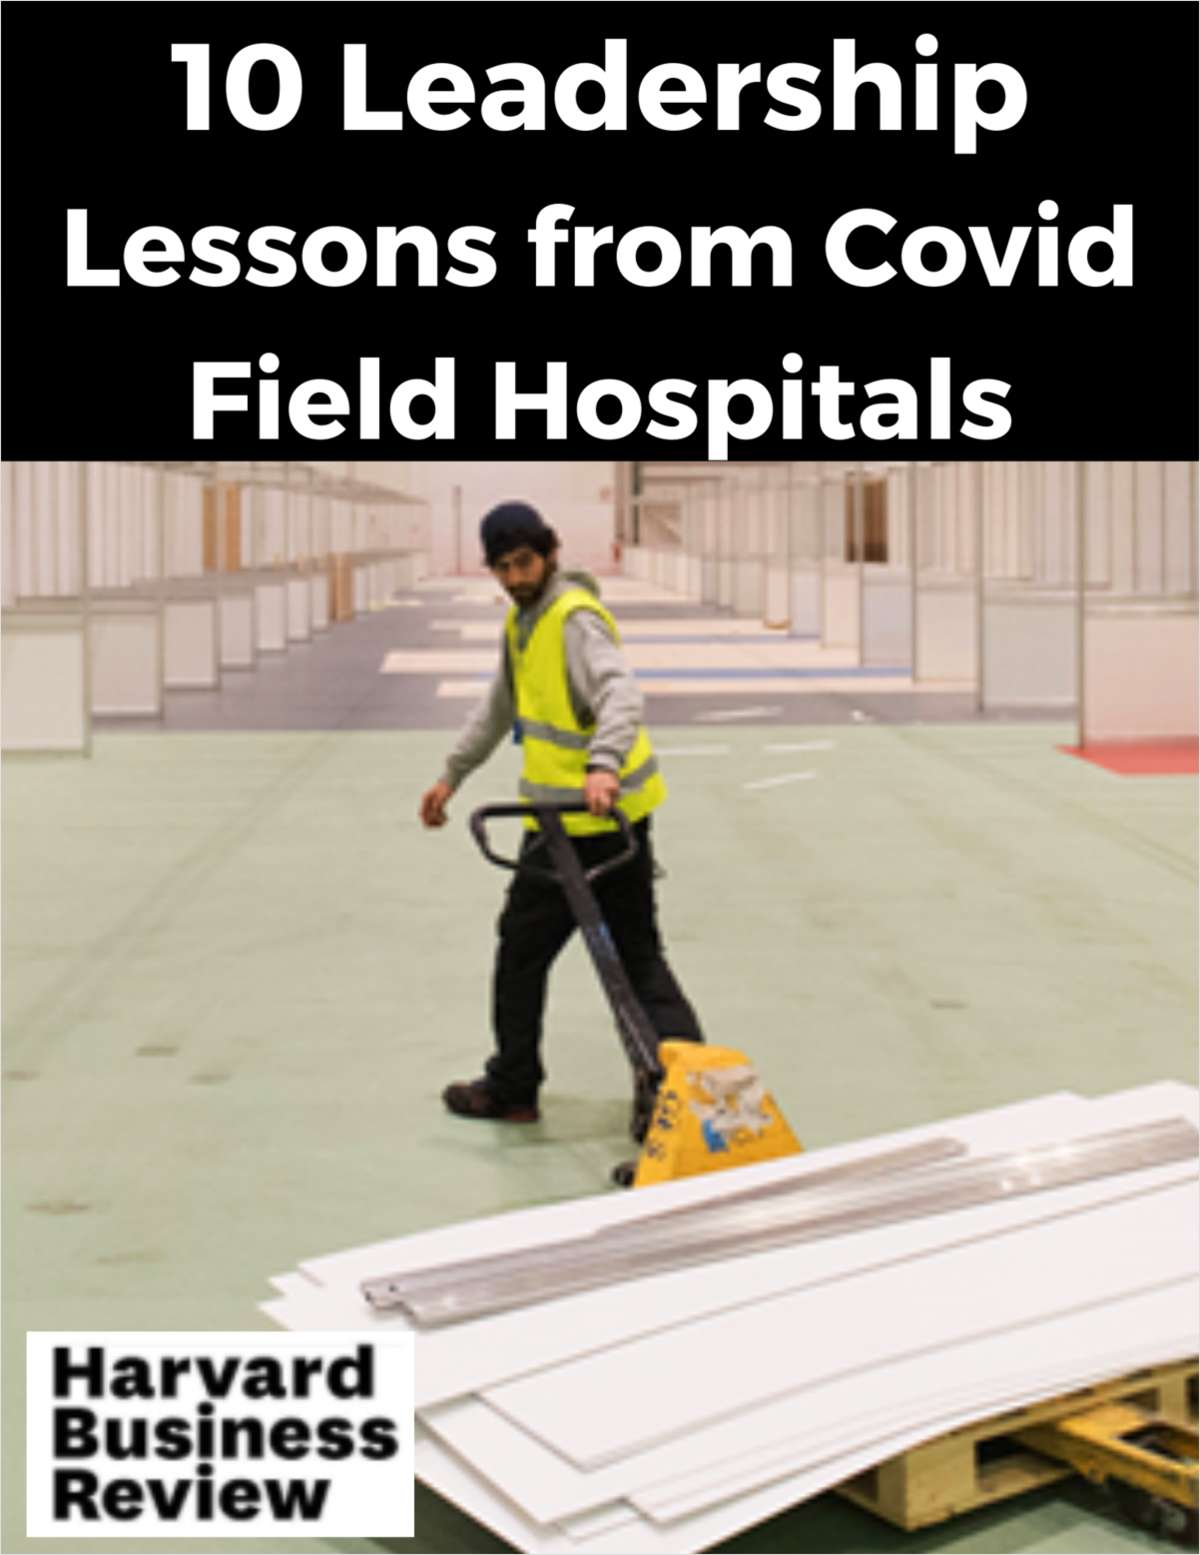 10 Leadership Lessons from Covid Field Hospitals